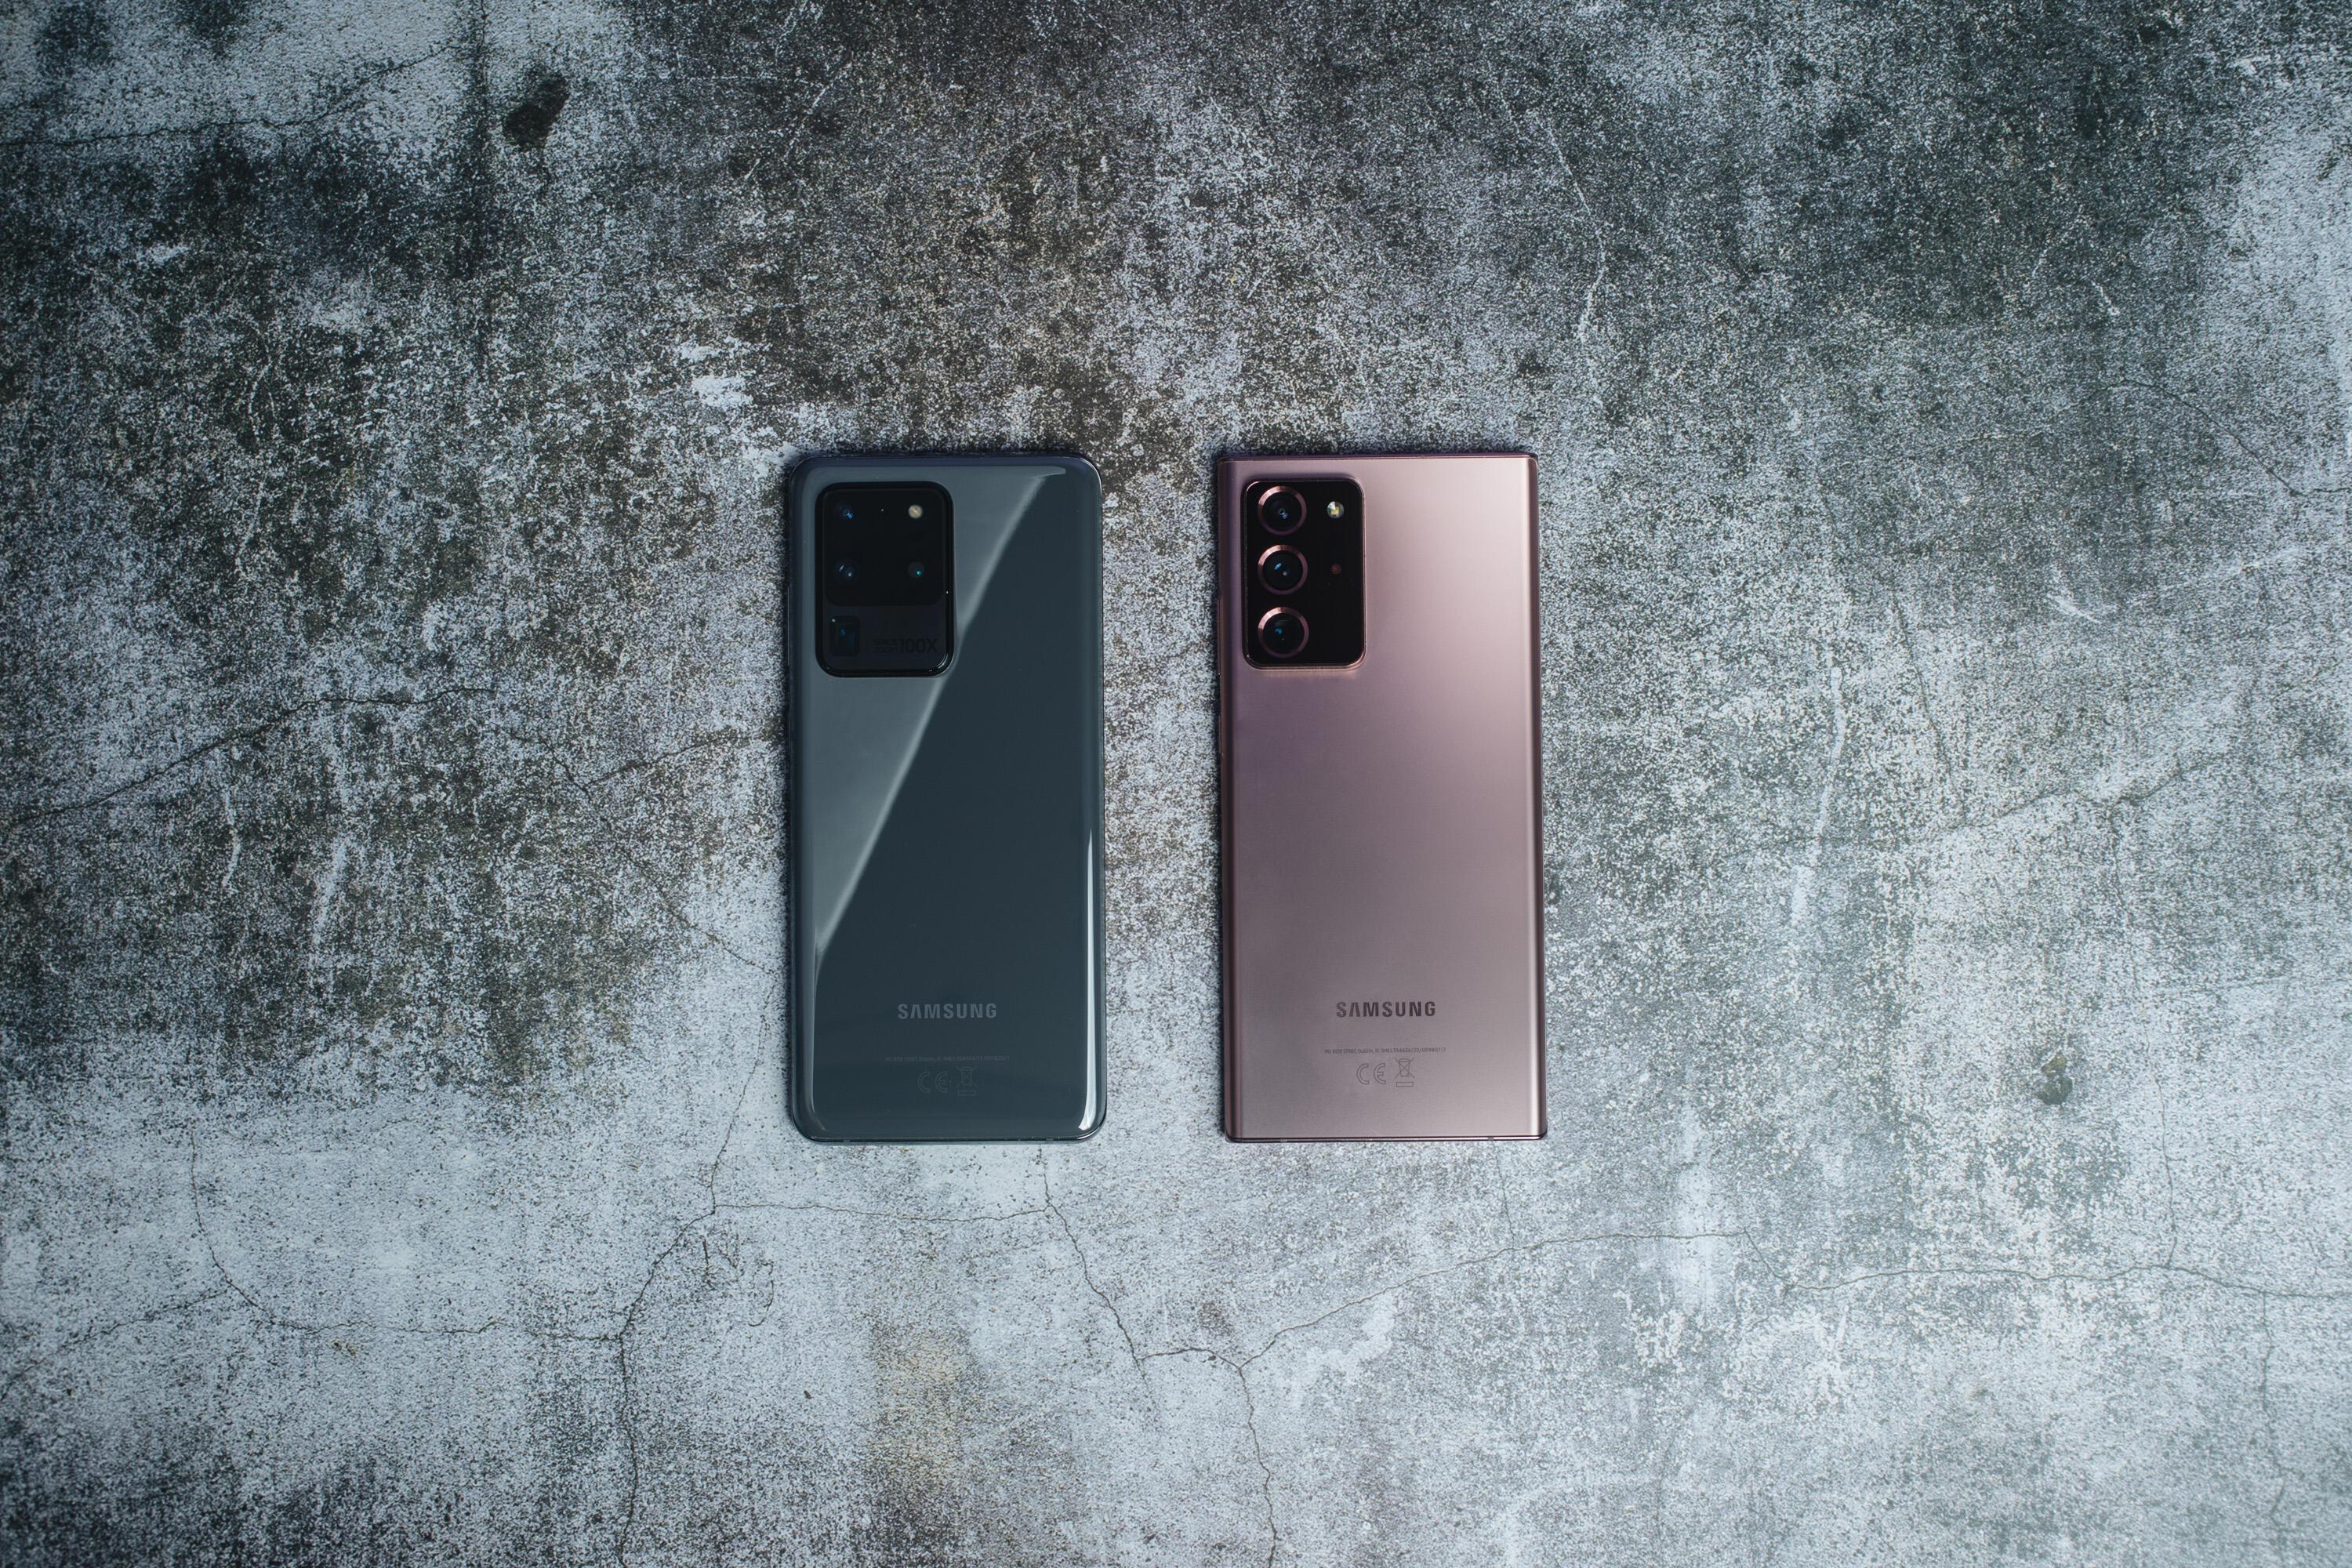 galaxy-s20-note-ultra-product-promo-hoyle-2021